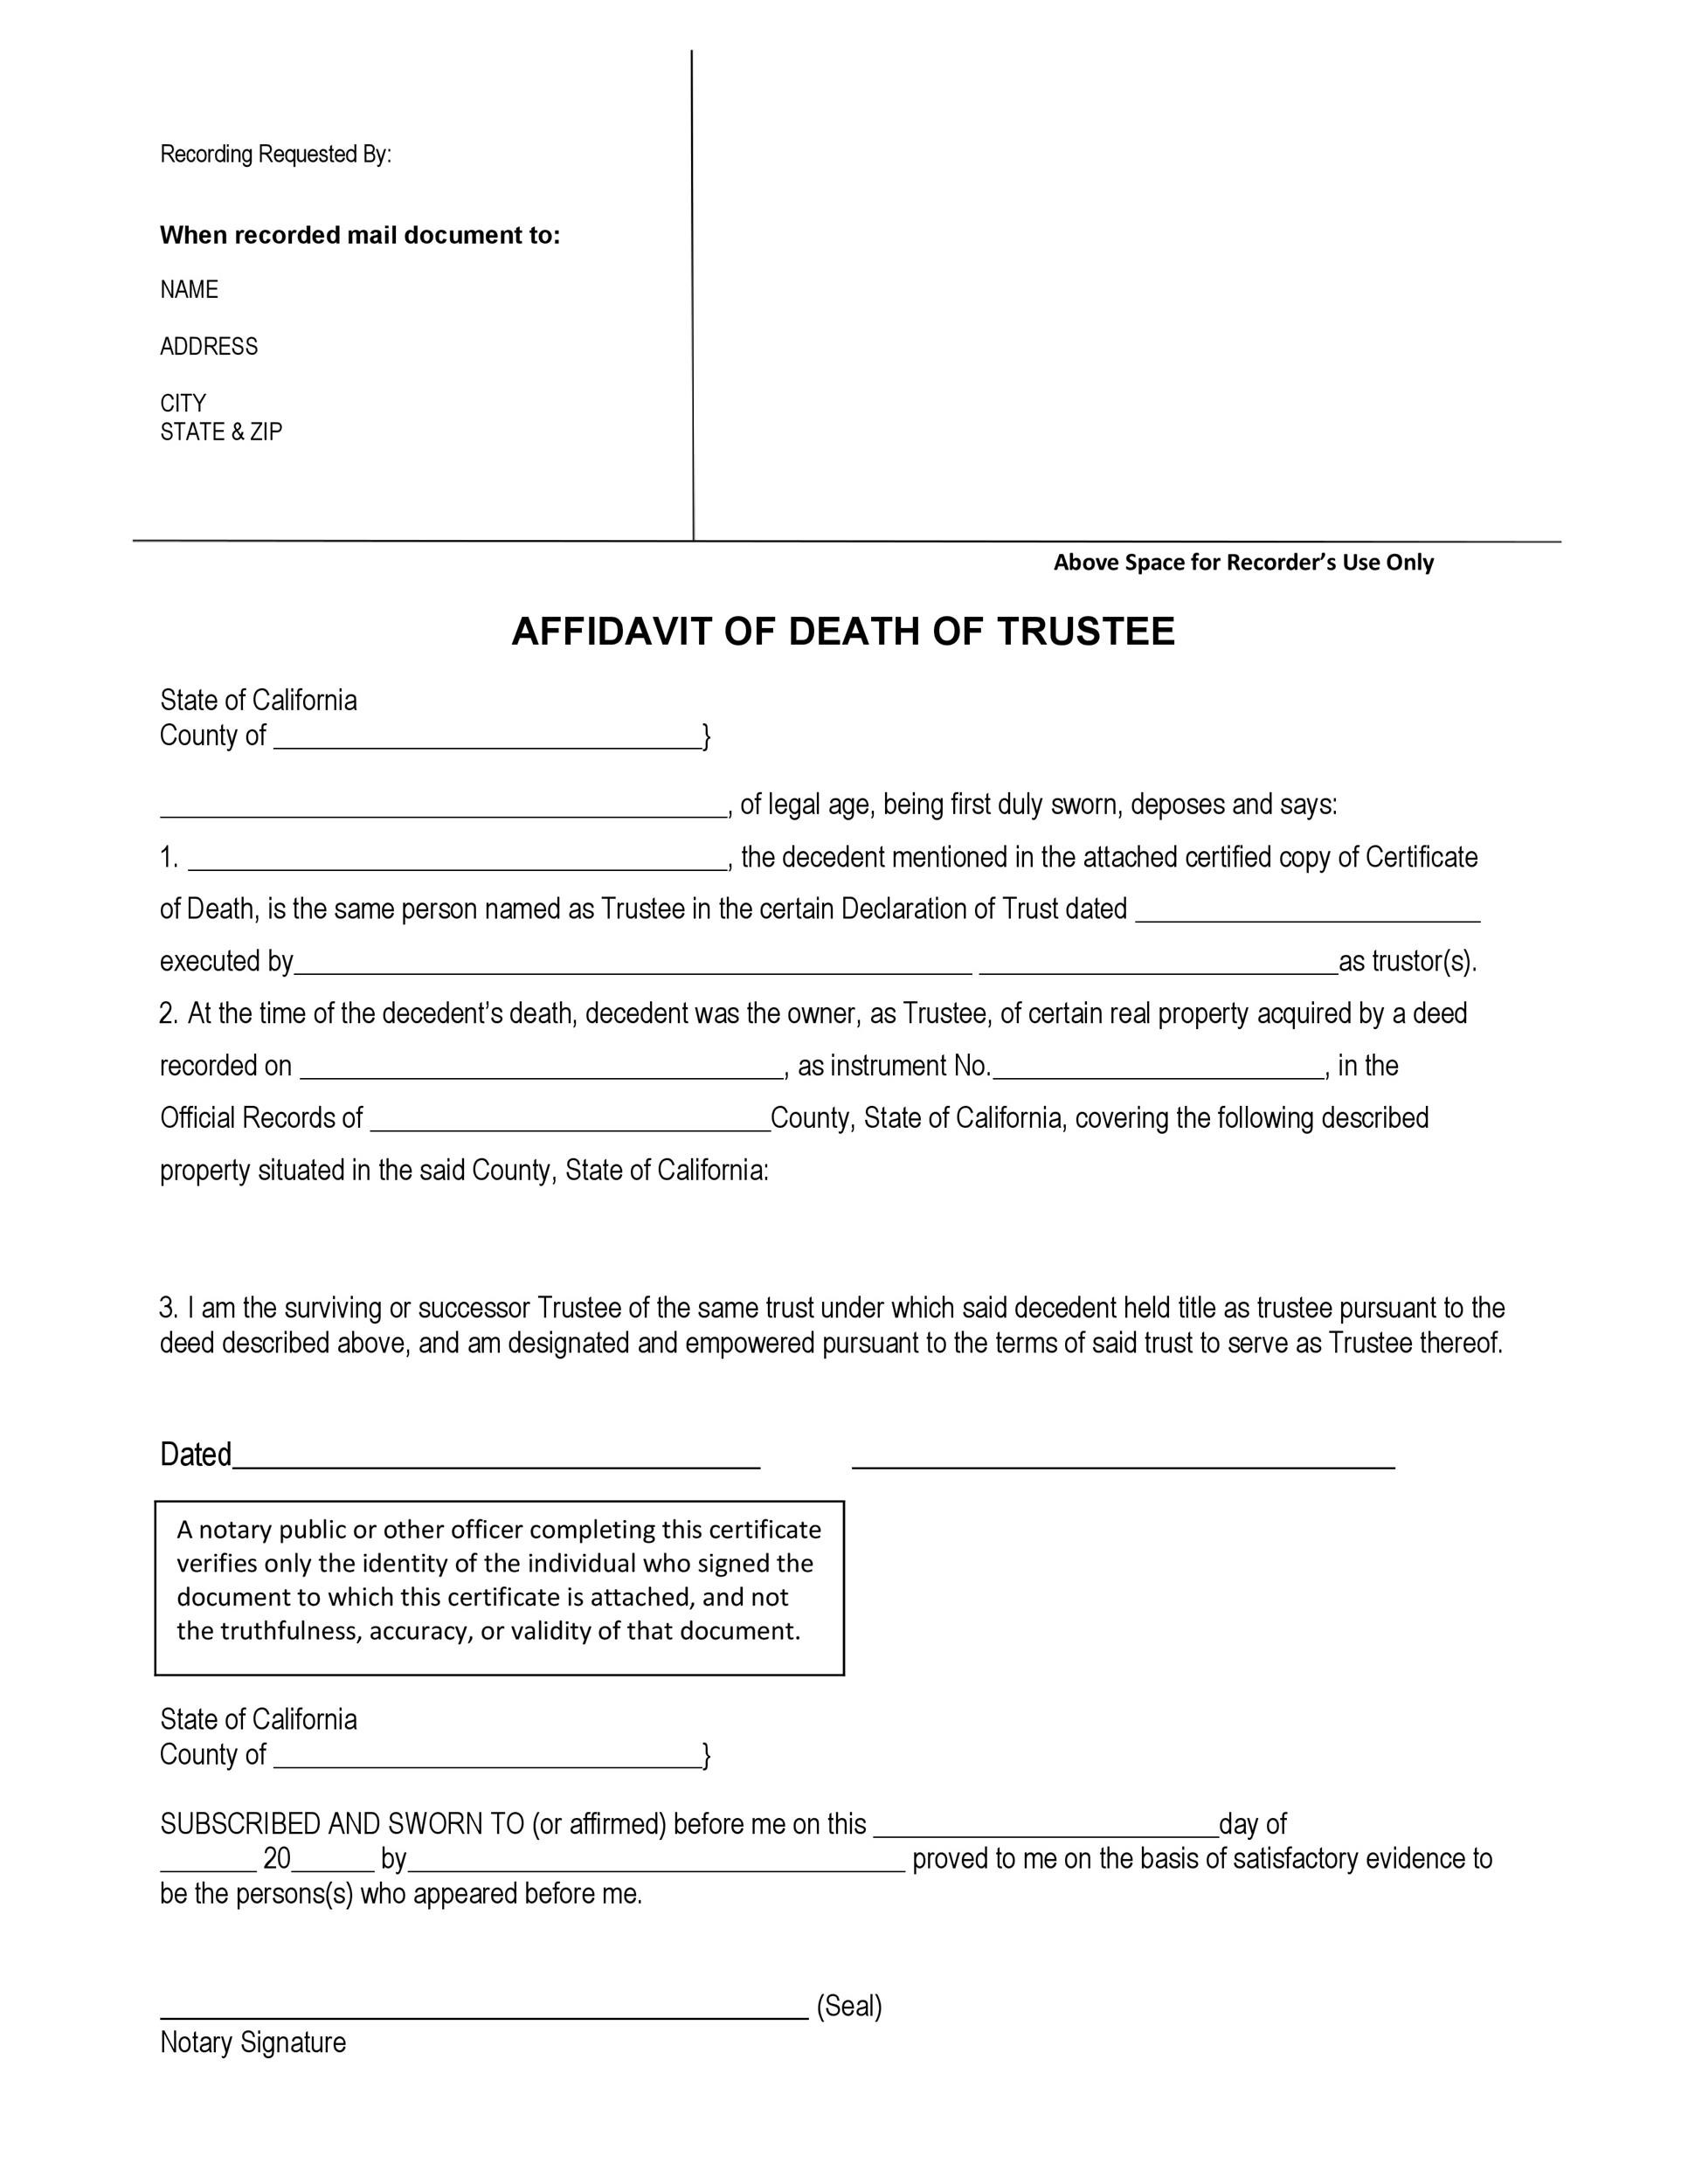 Free affidavit of death 03